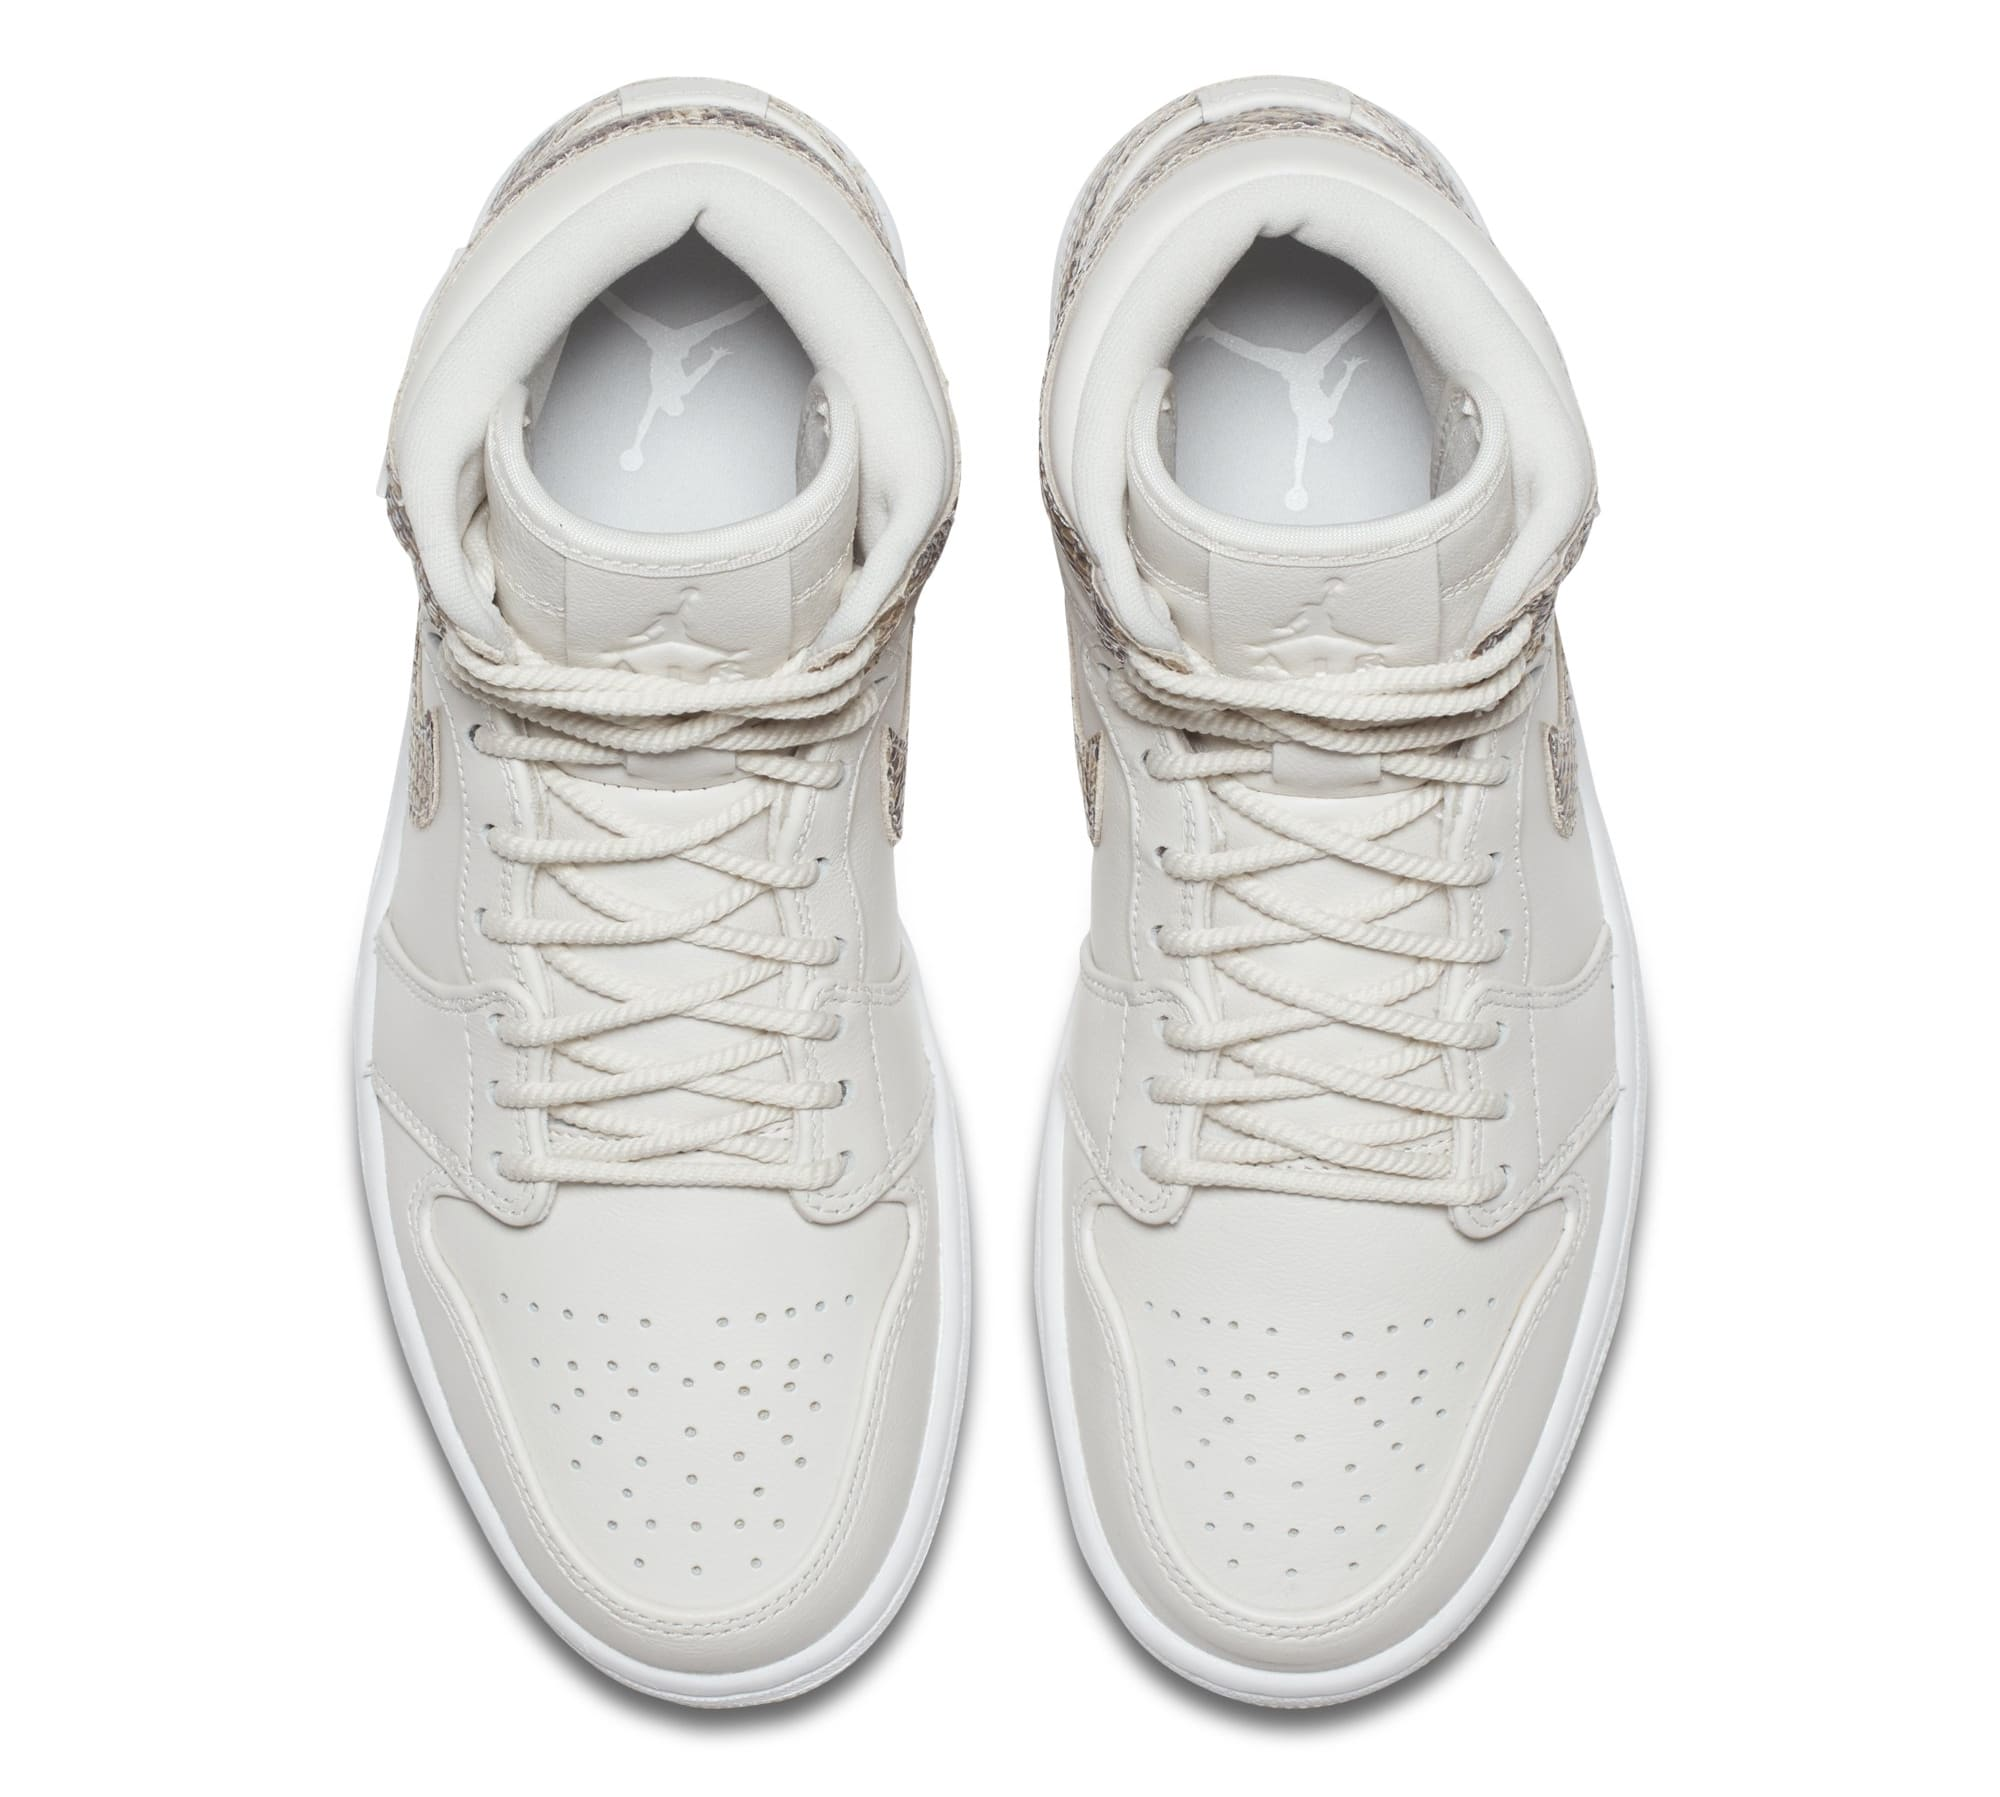 Air Jordan 1 Retro High Premium Women's Snake 'Phantom/White' AH7389-004 (Top)